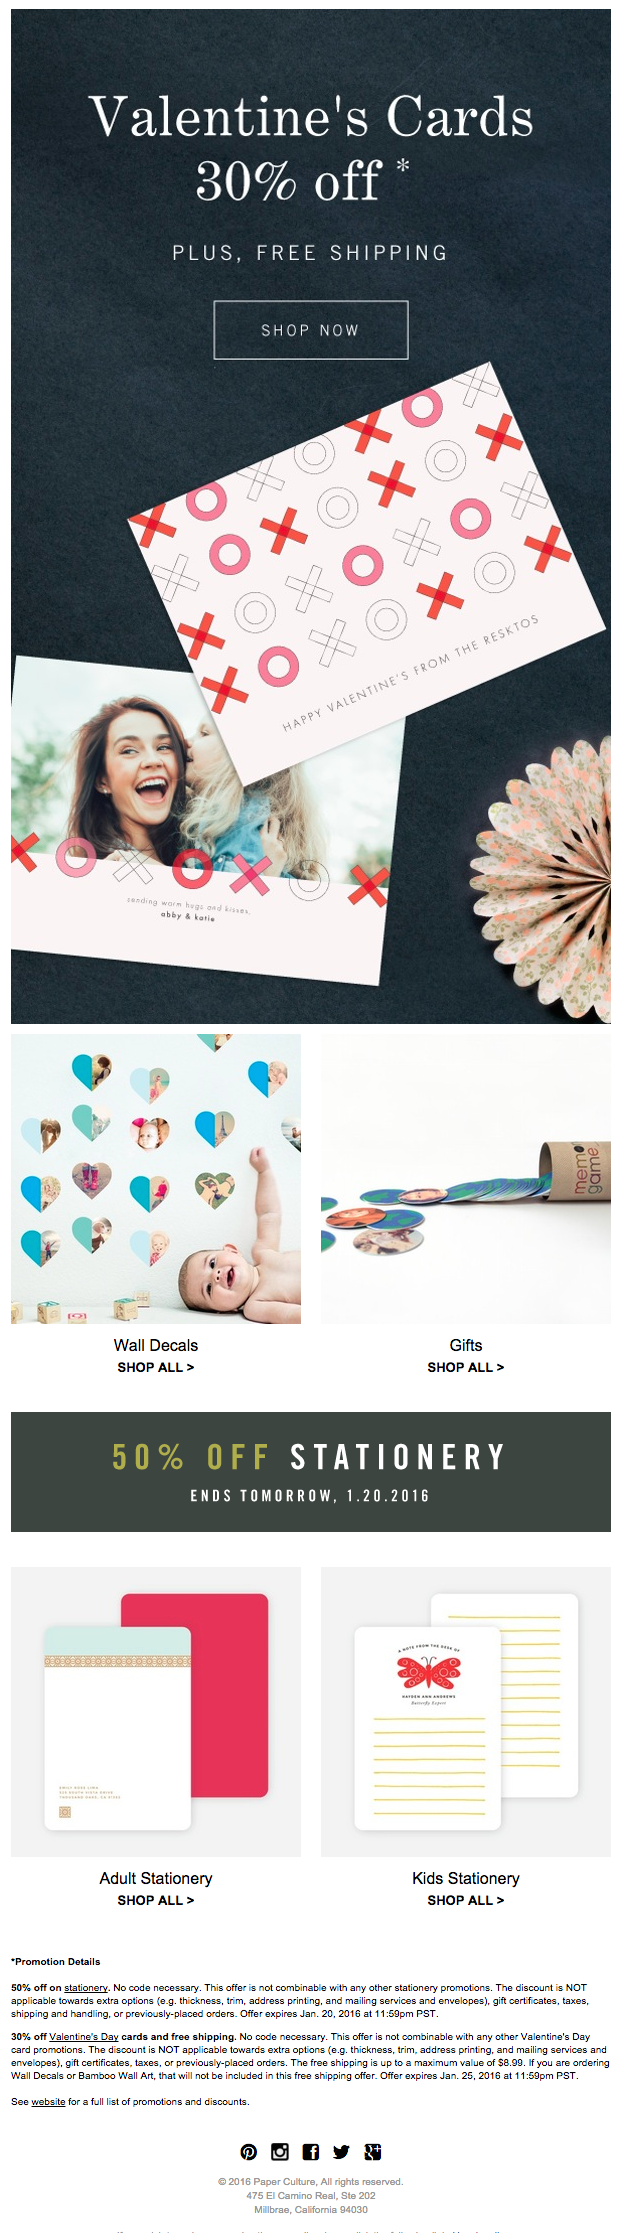 Elegant Valentine's Day Email Design from Paper Culture